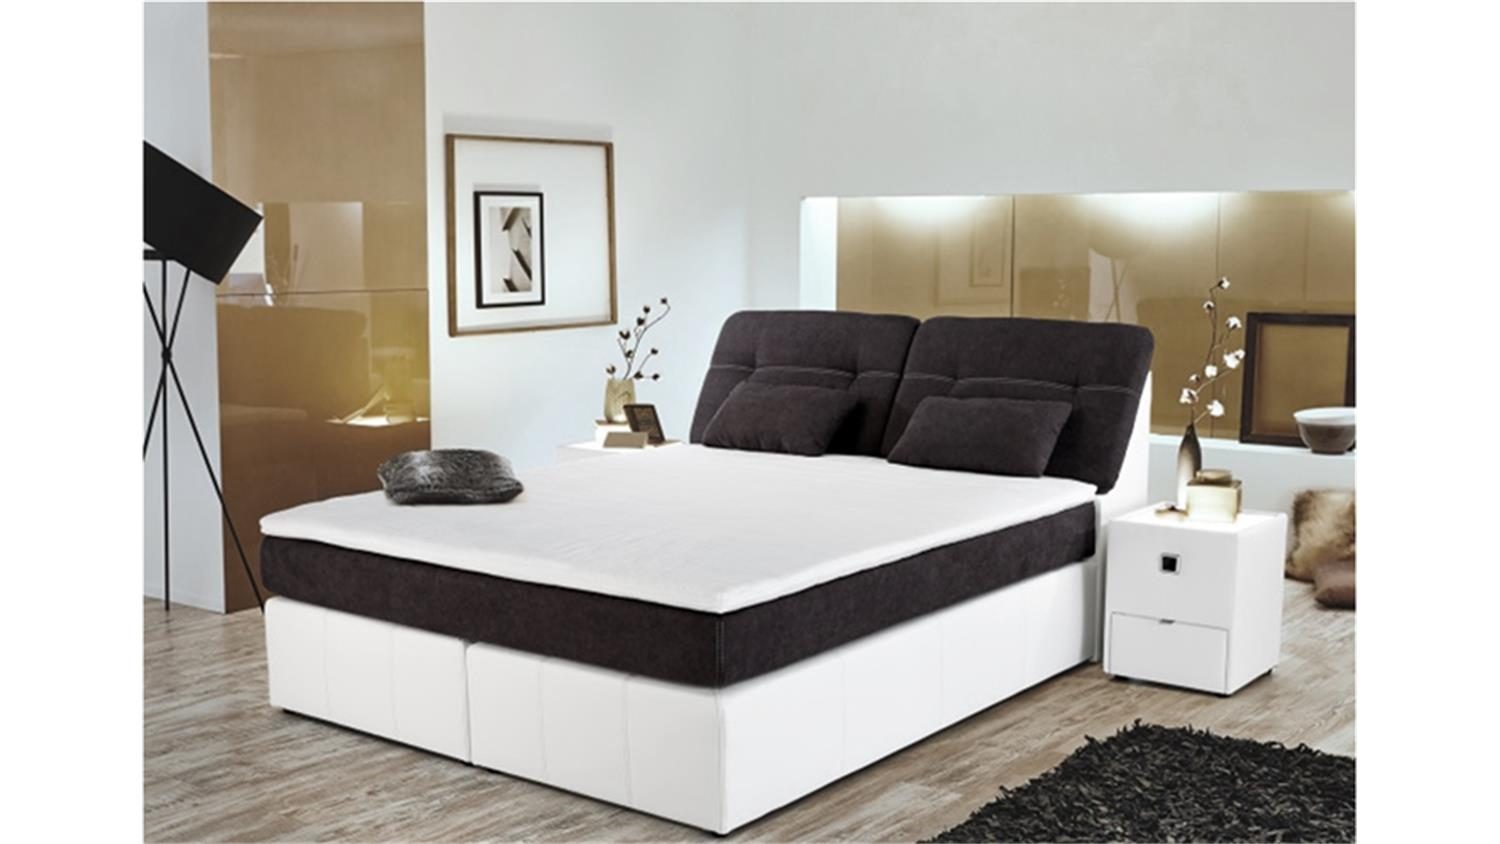 boxspringbett vicky bett schlafzimmerbett in grau wei. Black Bedroom Furniture Sets. Home Design Ideas